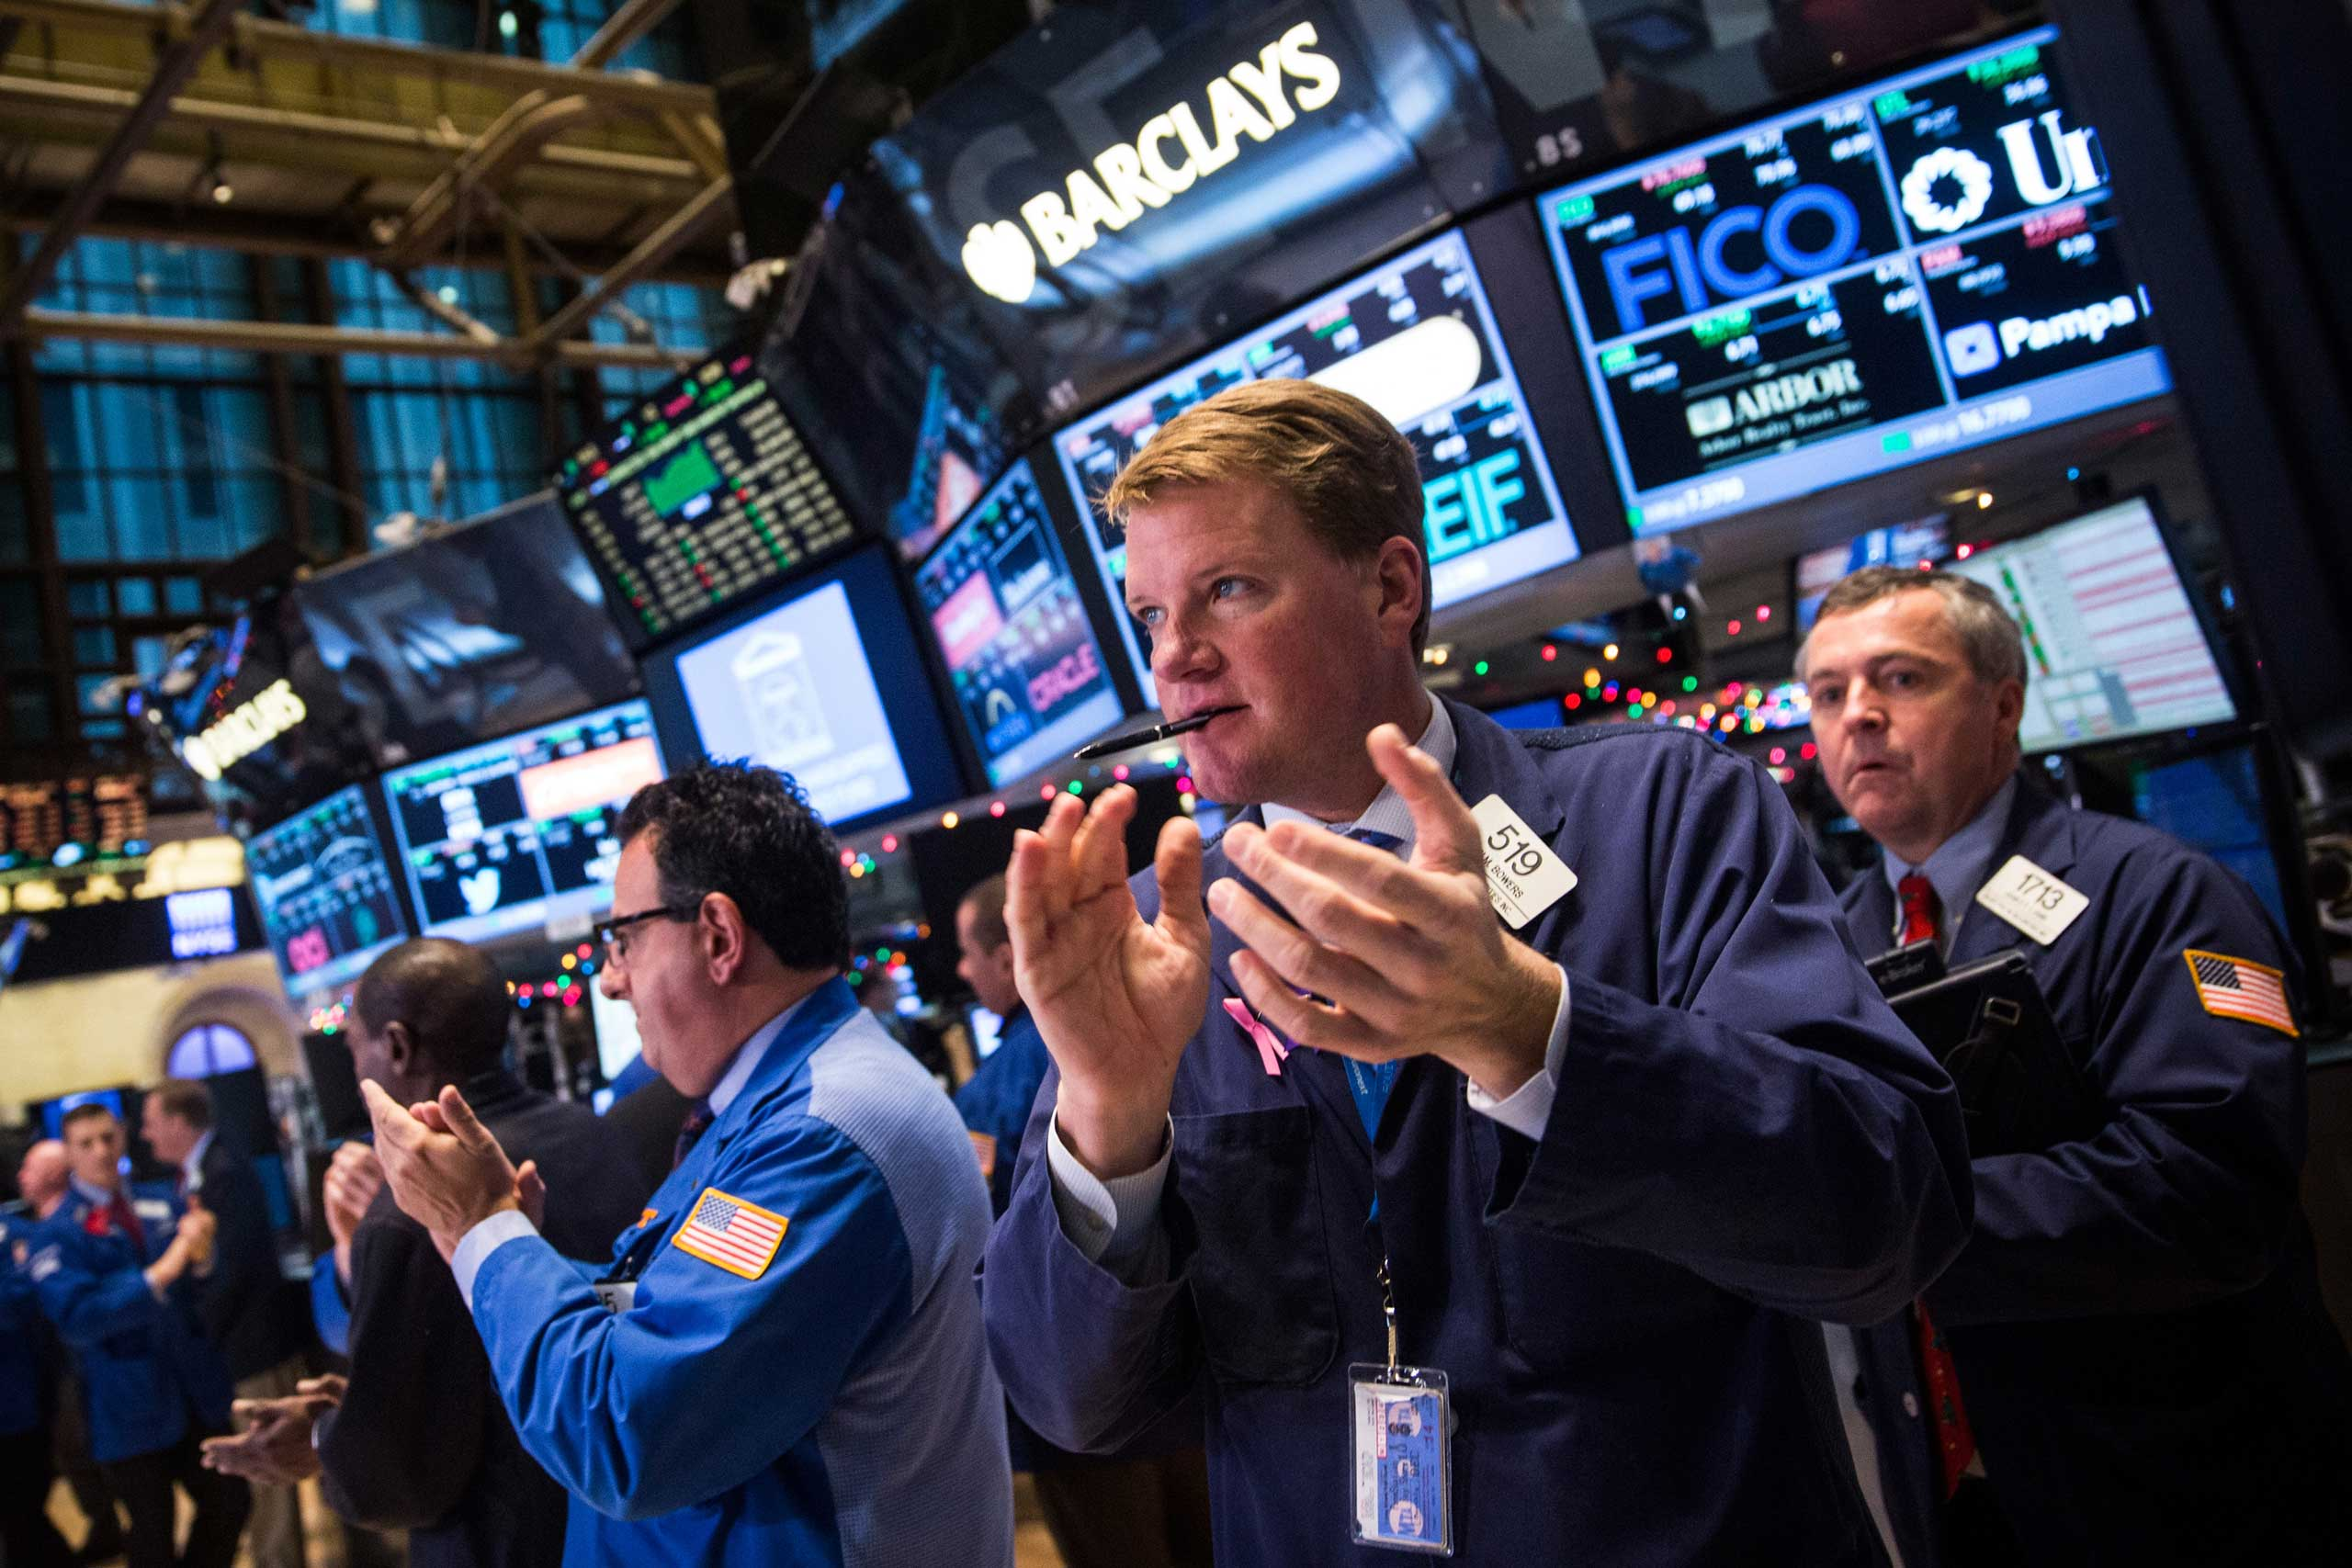 Traders work on the floor of the New York Stock Exchange in Nwe York City on Dec. 18, 2014.